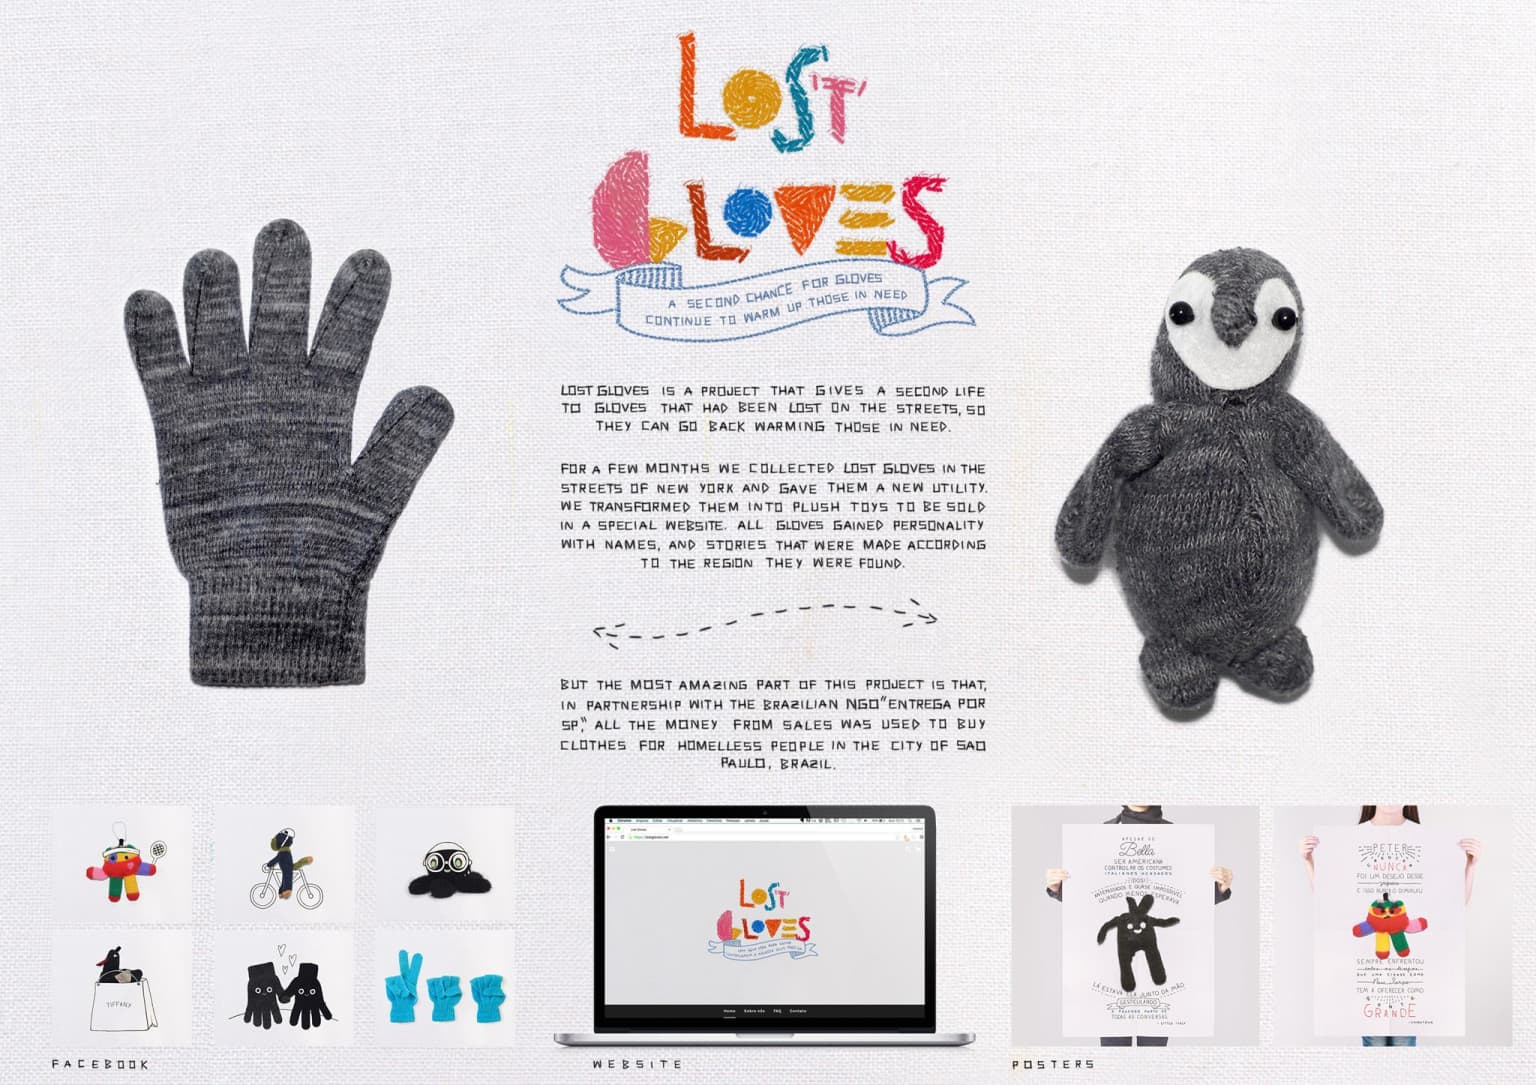 Lost Gloves